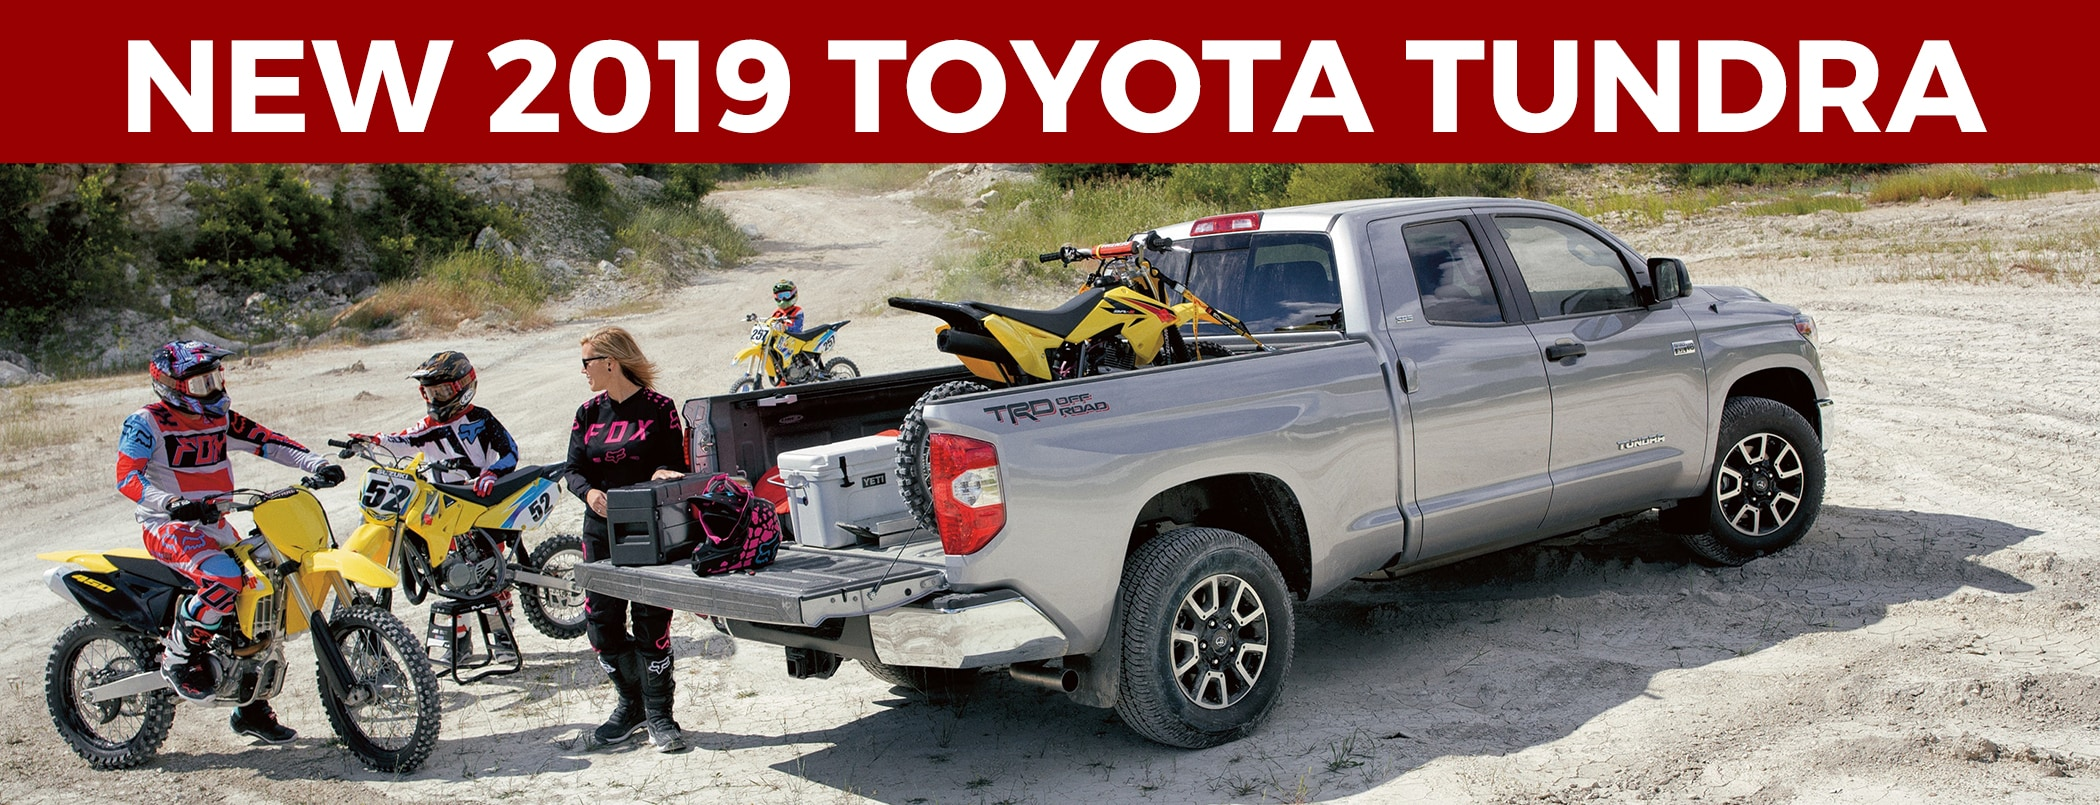 2019 Toyota Tundra Review Murray